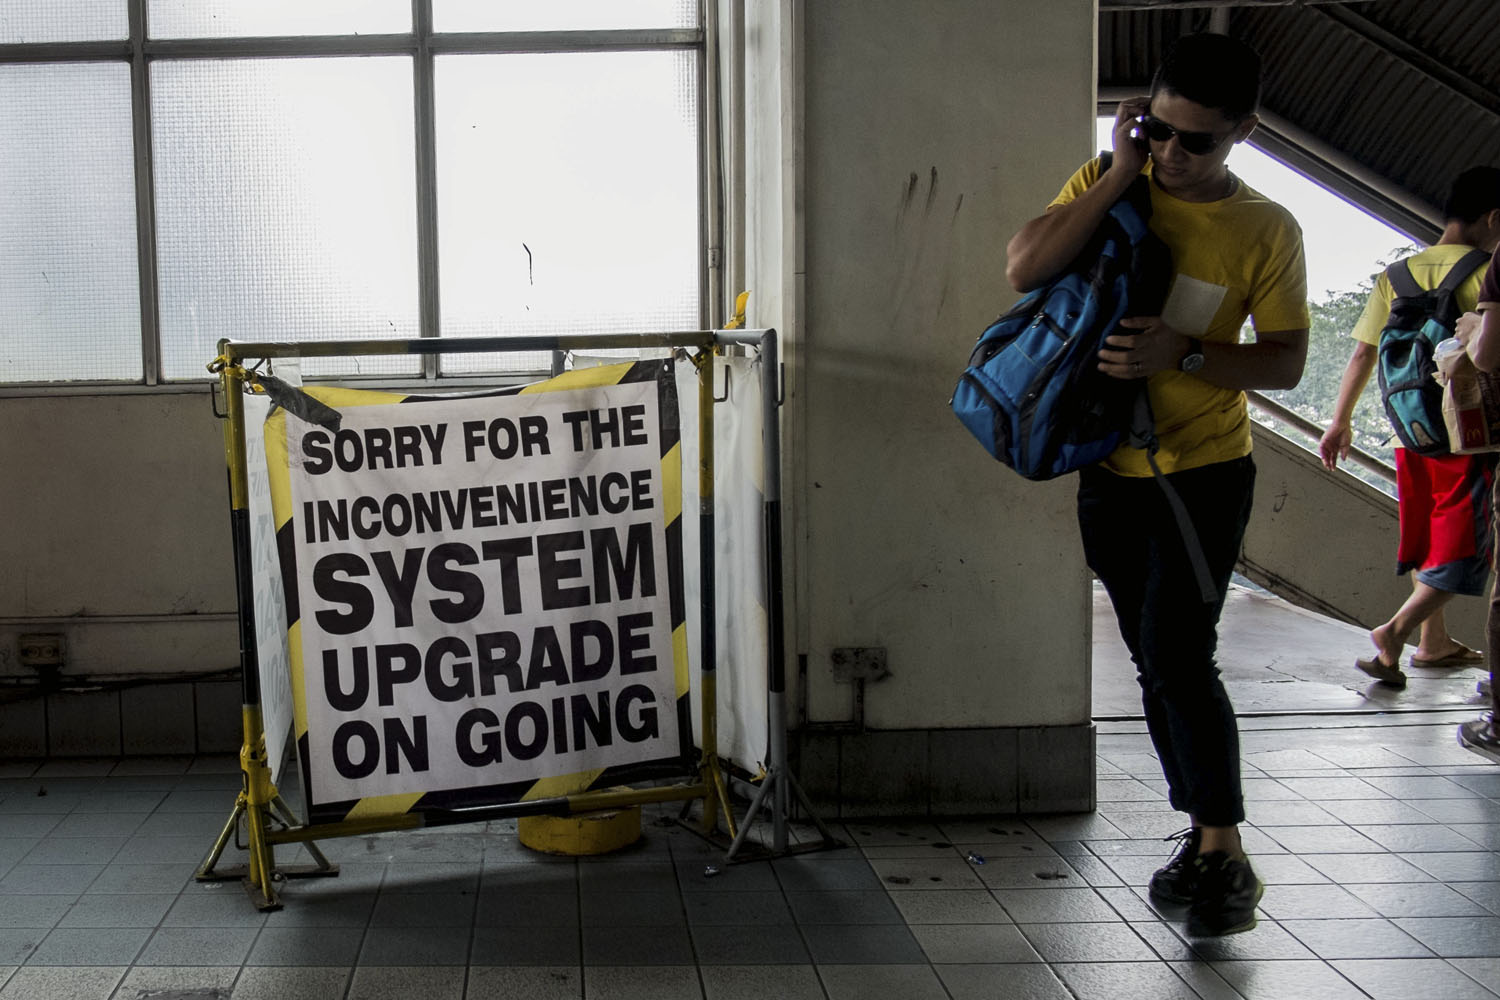 UPGRADE NEEDED. The MRT3 has been suffering frequent glitches in recent months. Photo by Mark Saludes/Rappler